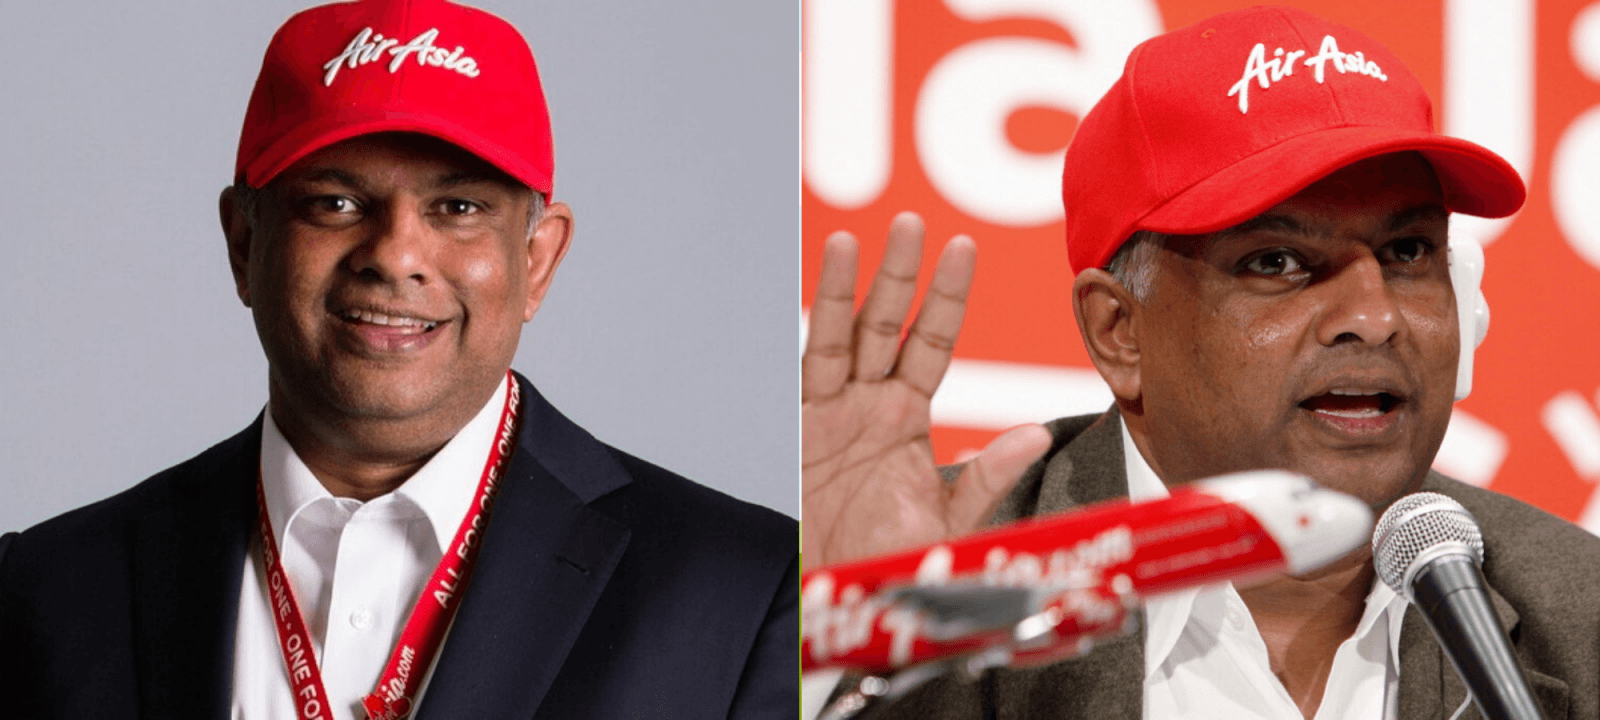 """Tony Fernandes Deletes His Twitter Account Due to Too Much """"Negativity"""""""